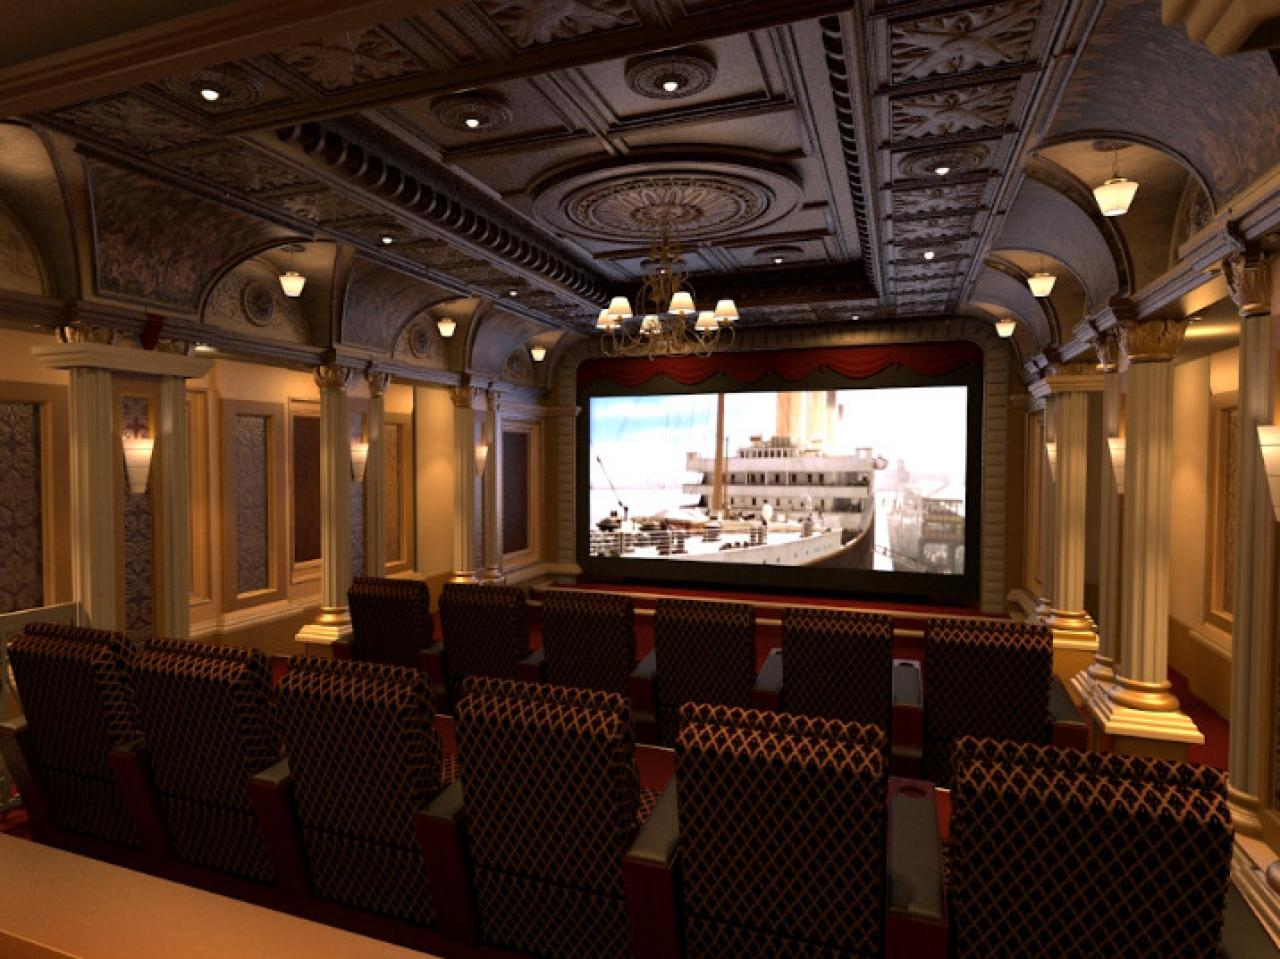 Building a home theater pictures options tips ideas Theater rooms design ideas